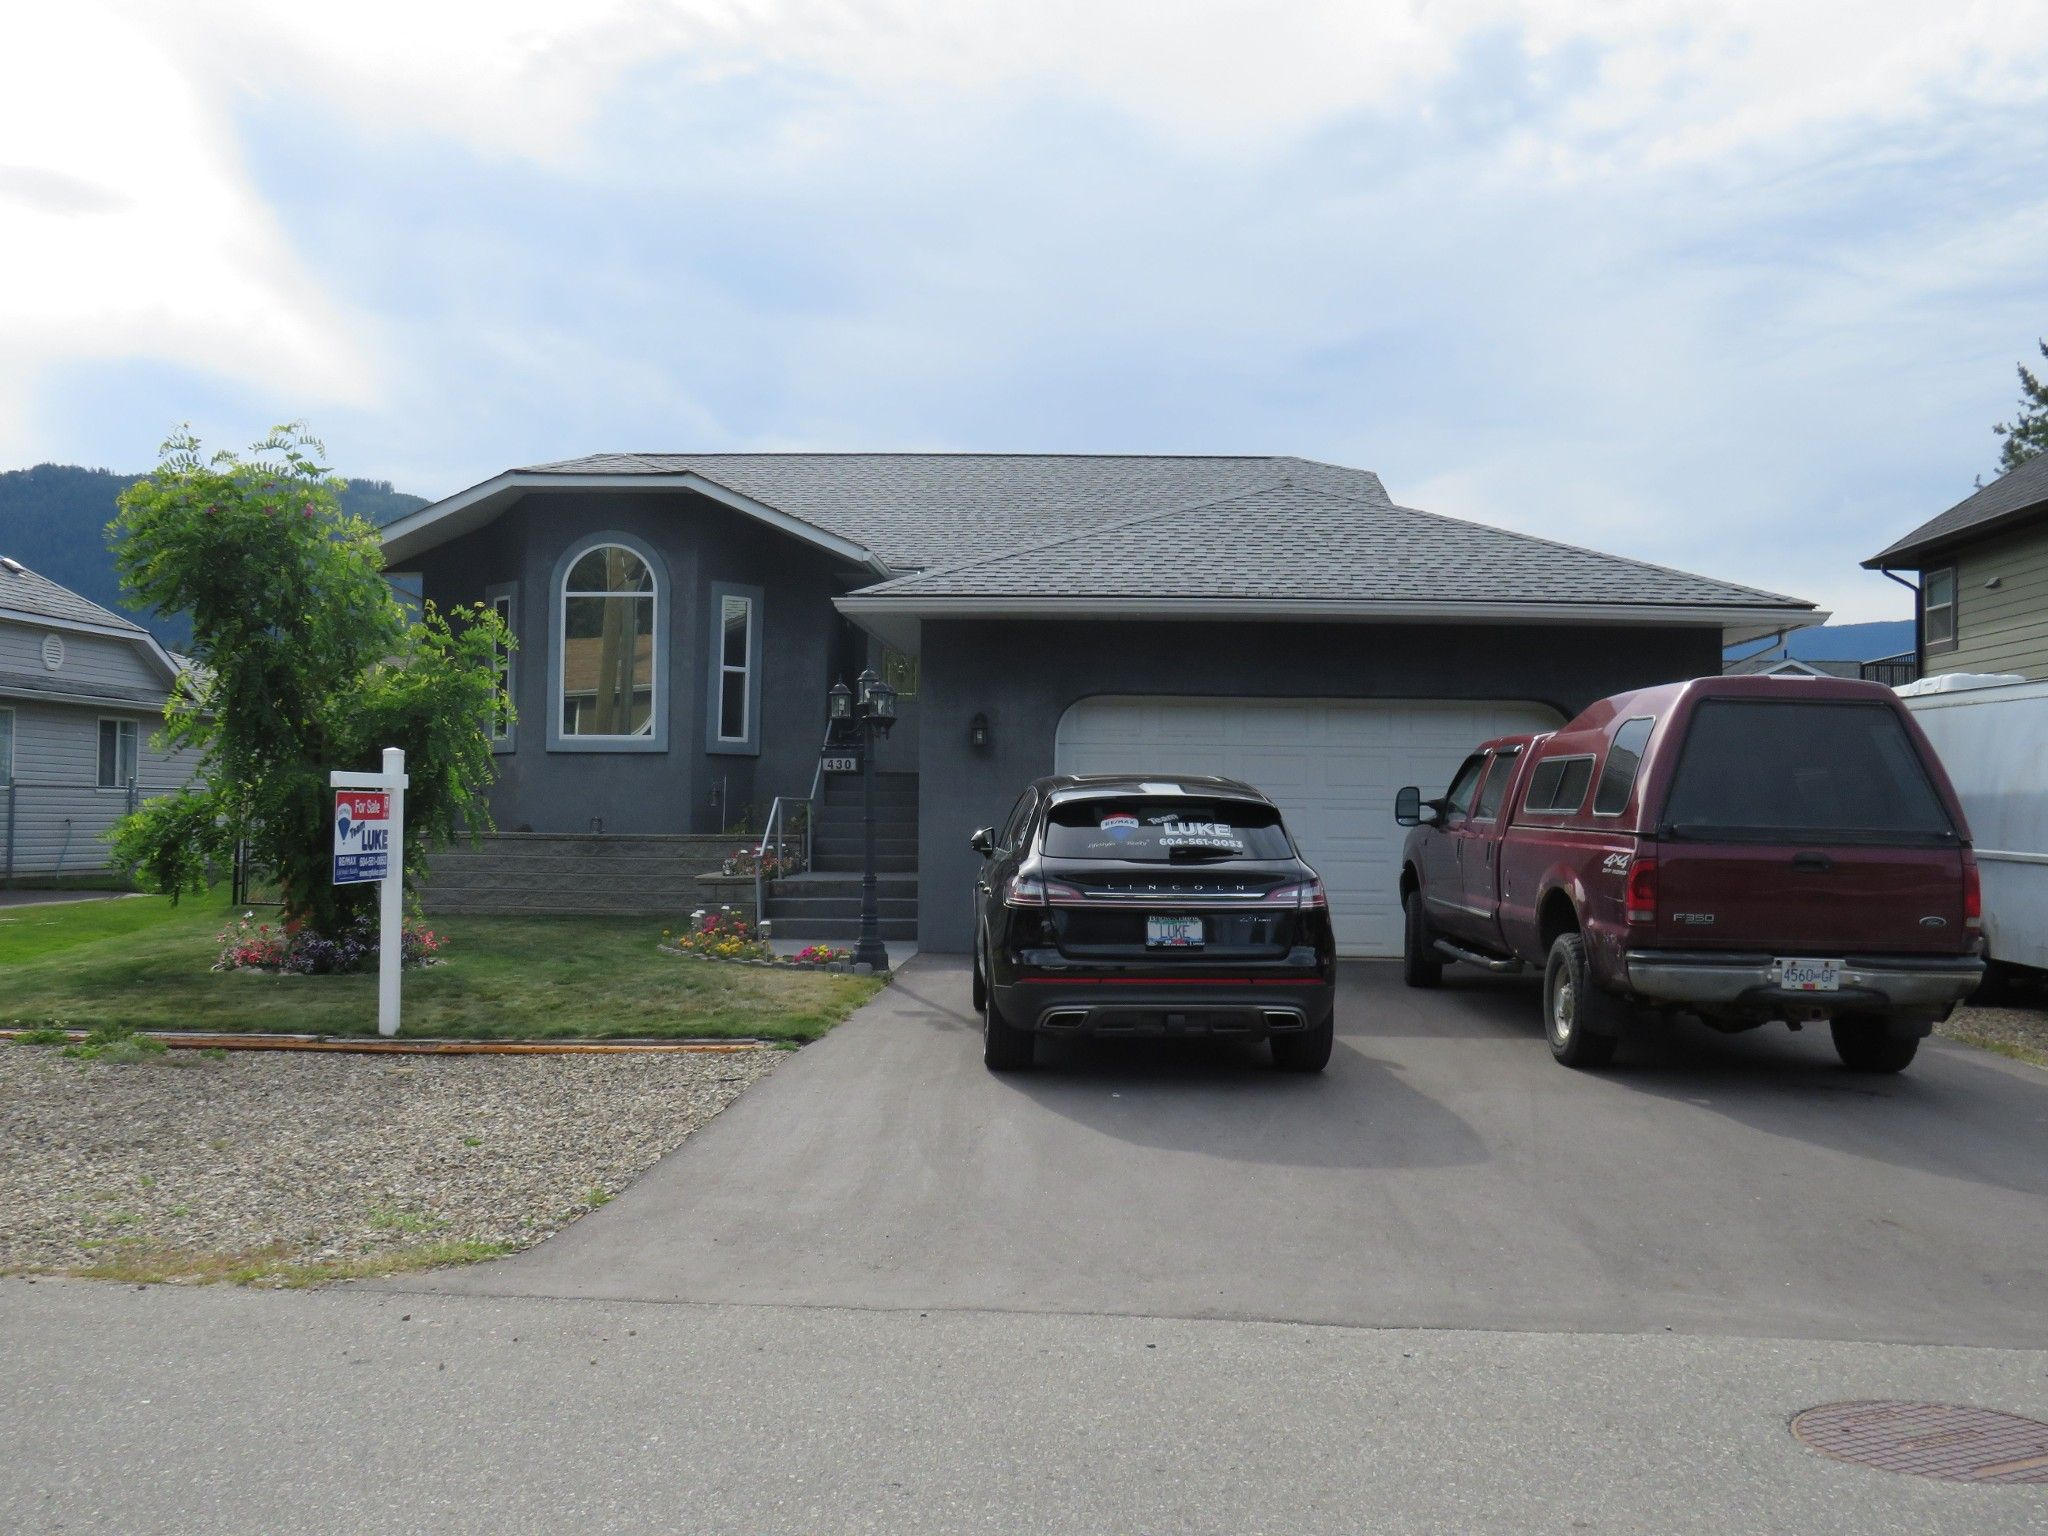 Main Photo: 430 Dogwood Avenue: Sicamous House for sale (Shuswap/Revelstoke)  : MLS®# 10214114